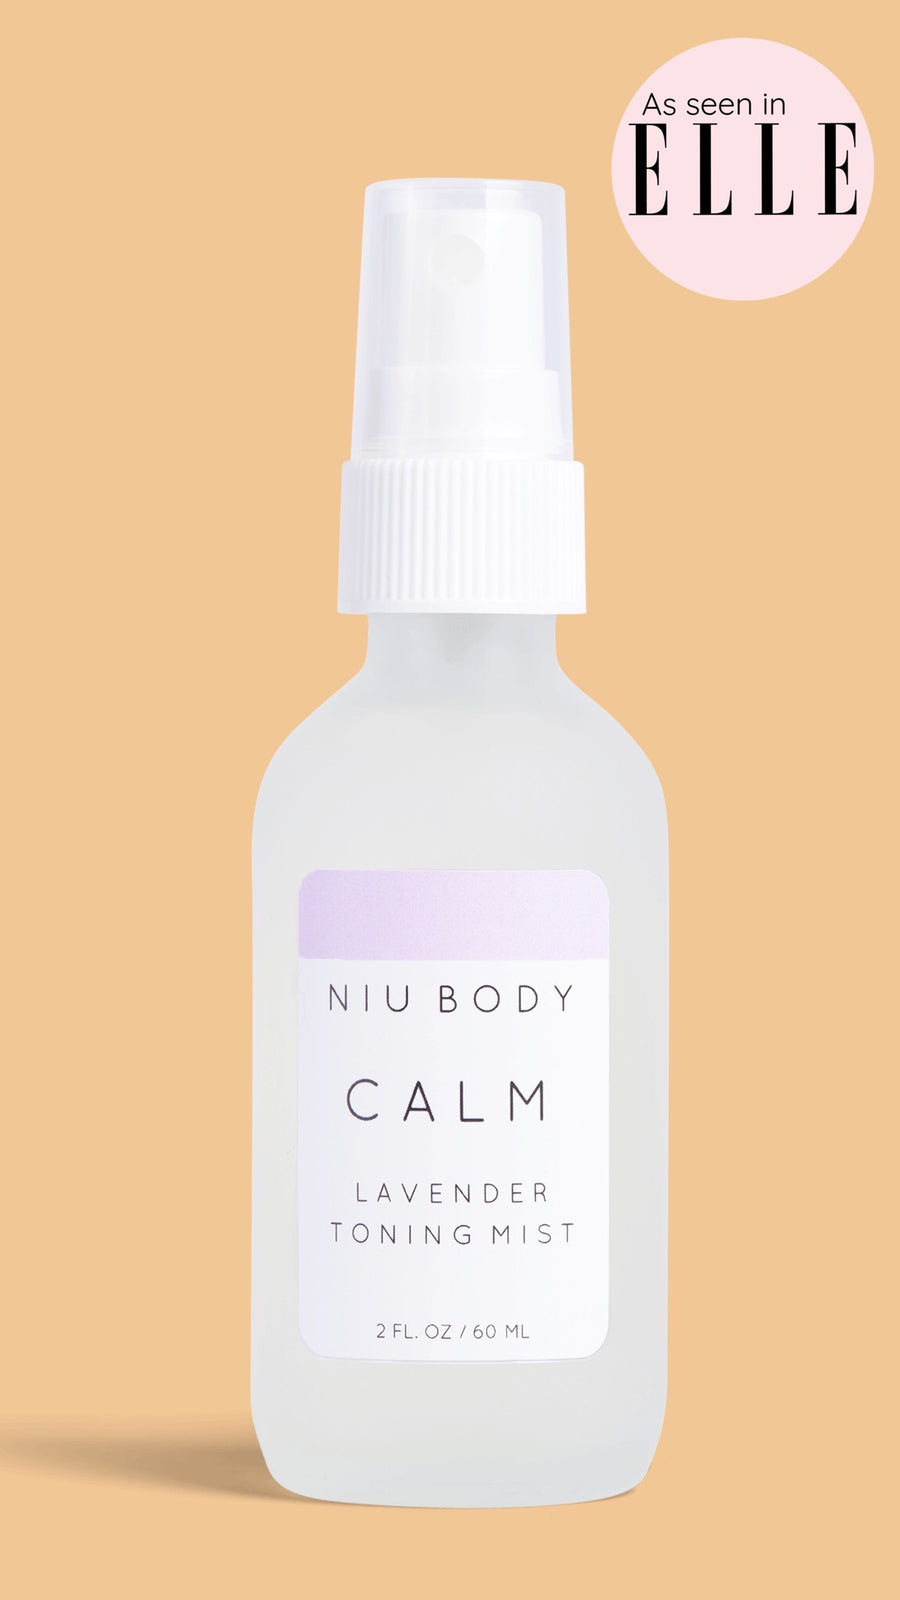 Niu Body Calm Lavender Toning Mist As Seen in Elle Magazine